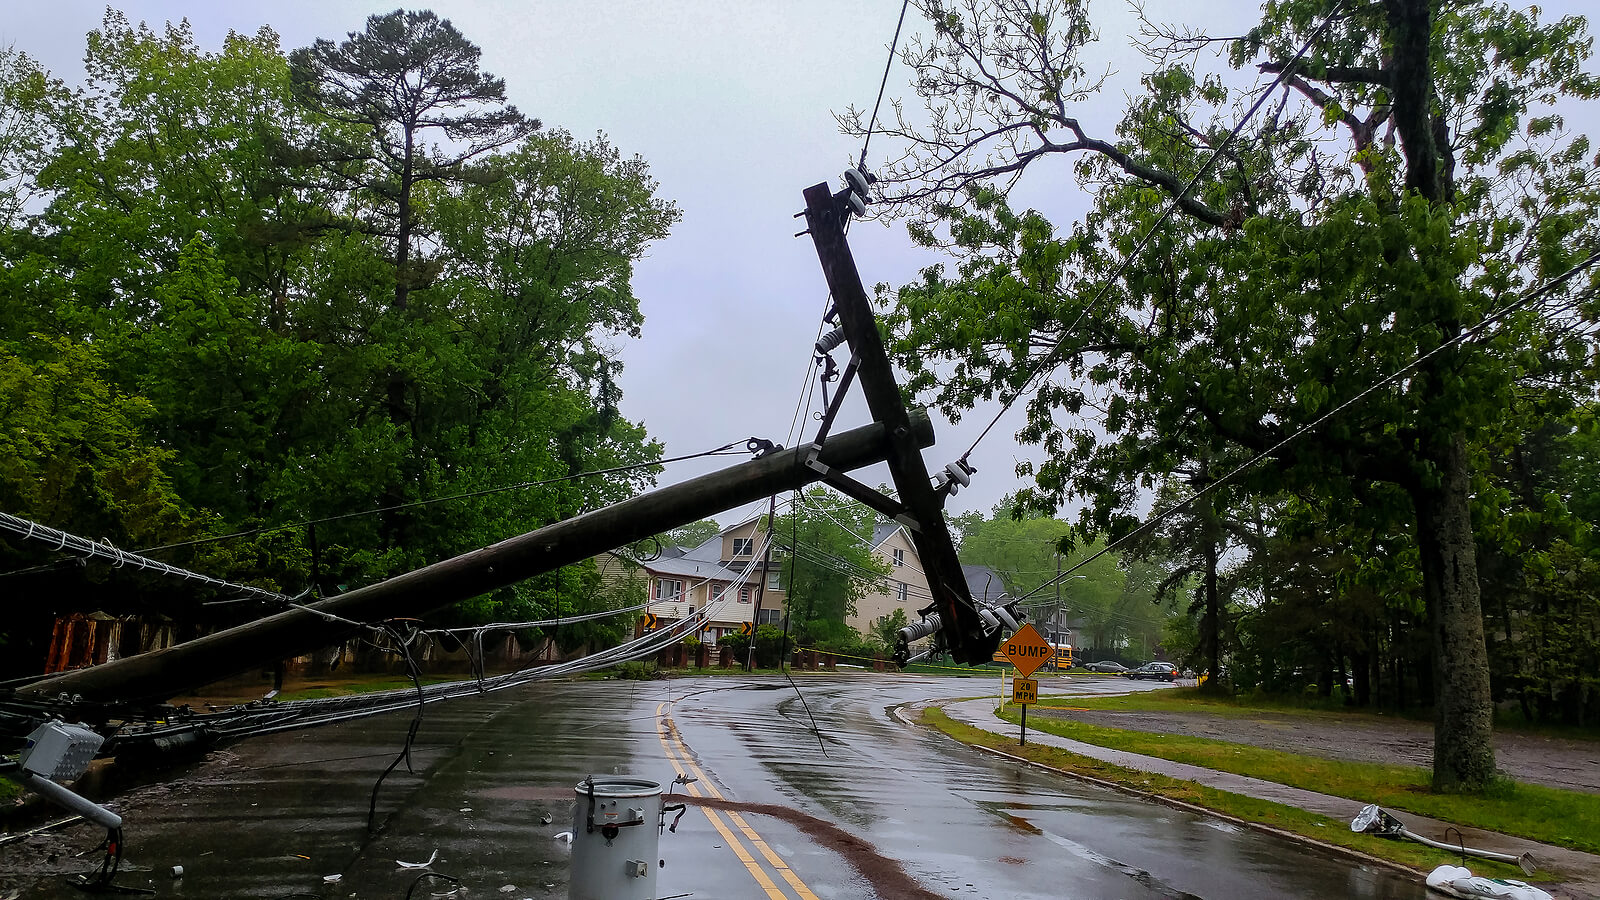 Safety Guide in event of Downed Power Line